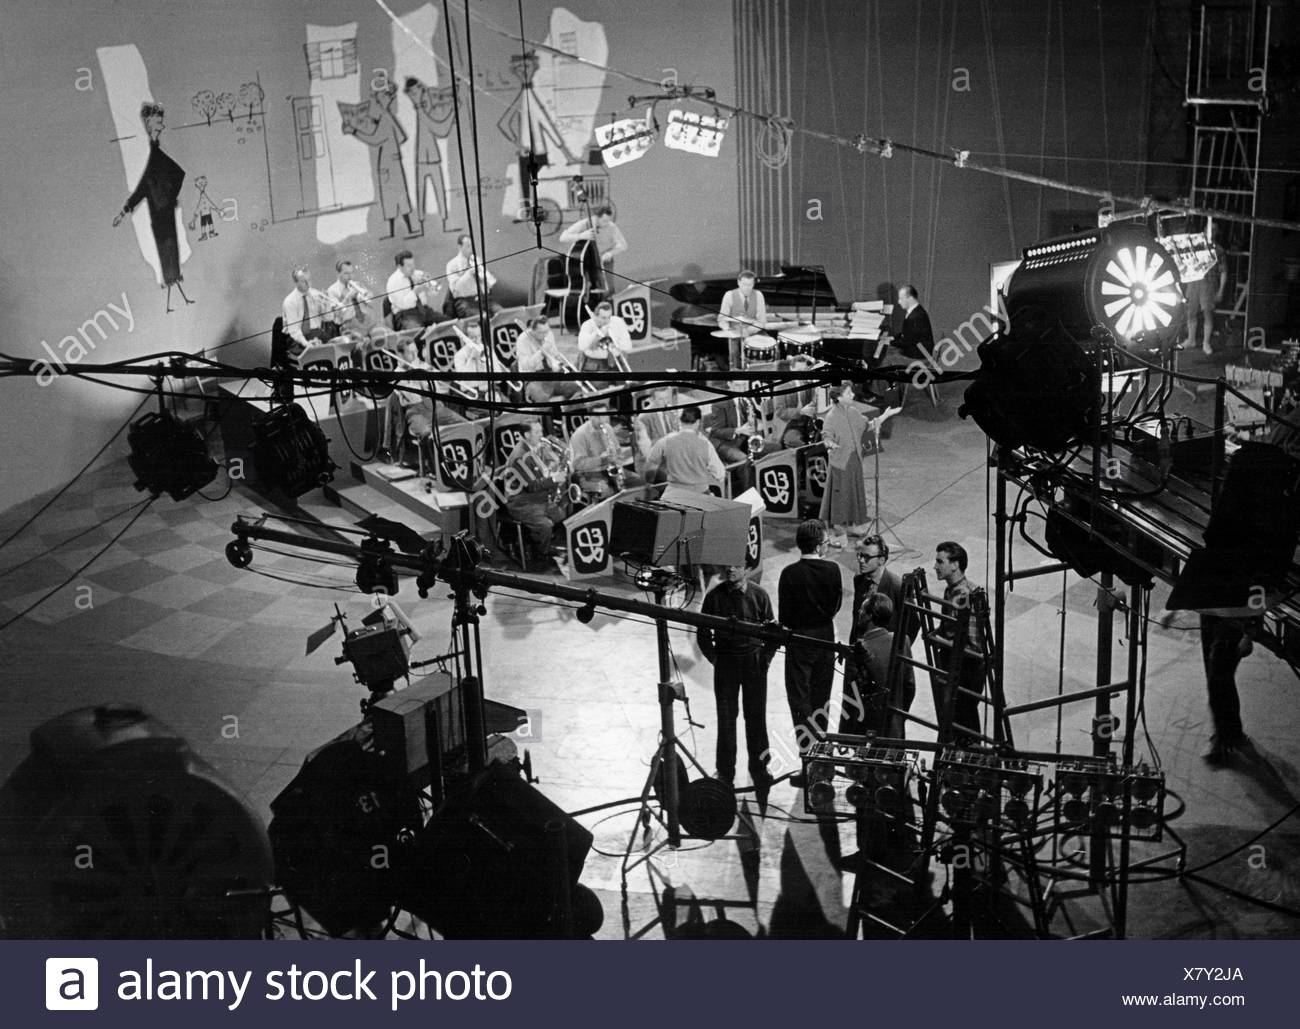 Lehn Erwin 8 6 1919 20 3 2010 German Musician And Bandleader Leader Of Southern Radio Dance Orchestra Swr Big Band 1951 1992 In The Television Studio South German Broadcasting Stuttgart Late 1950s Stock Photo Alamy